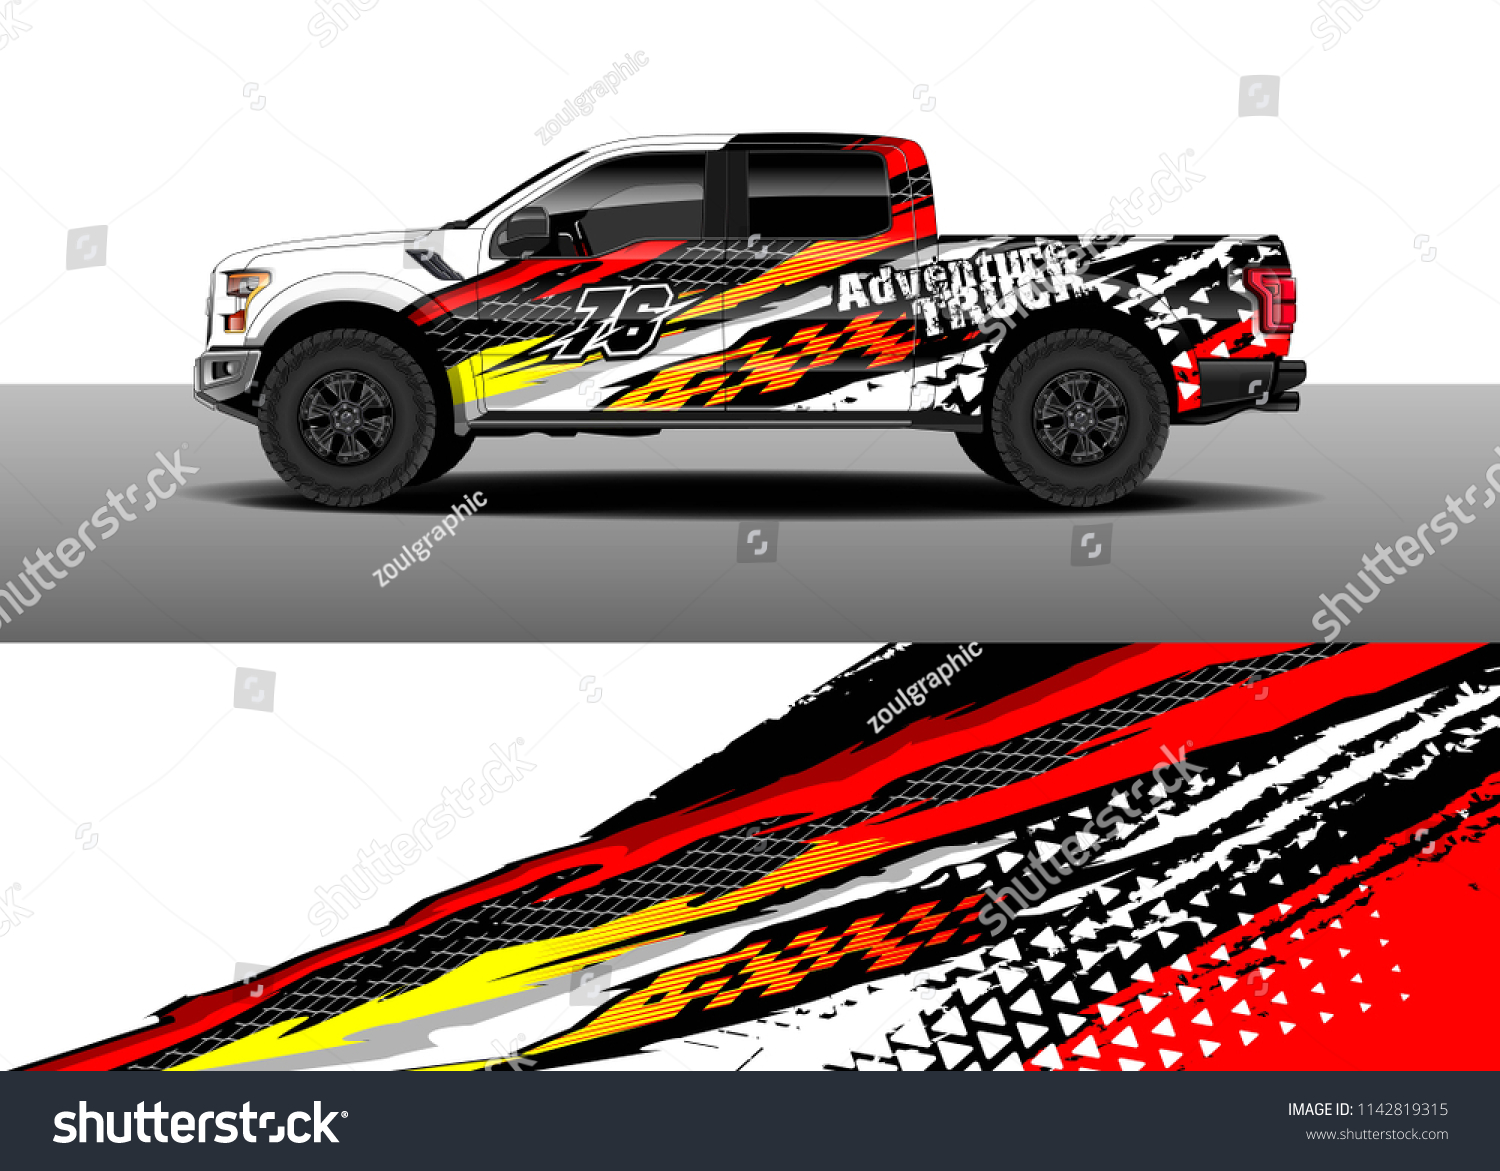 Truck Vehicle Graphic Decal Designs Car Stock Vector Royalty Free 1142819315,Upper Arm Best Small Tattoo Designs For Arms